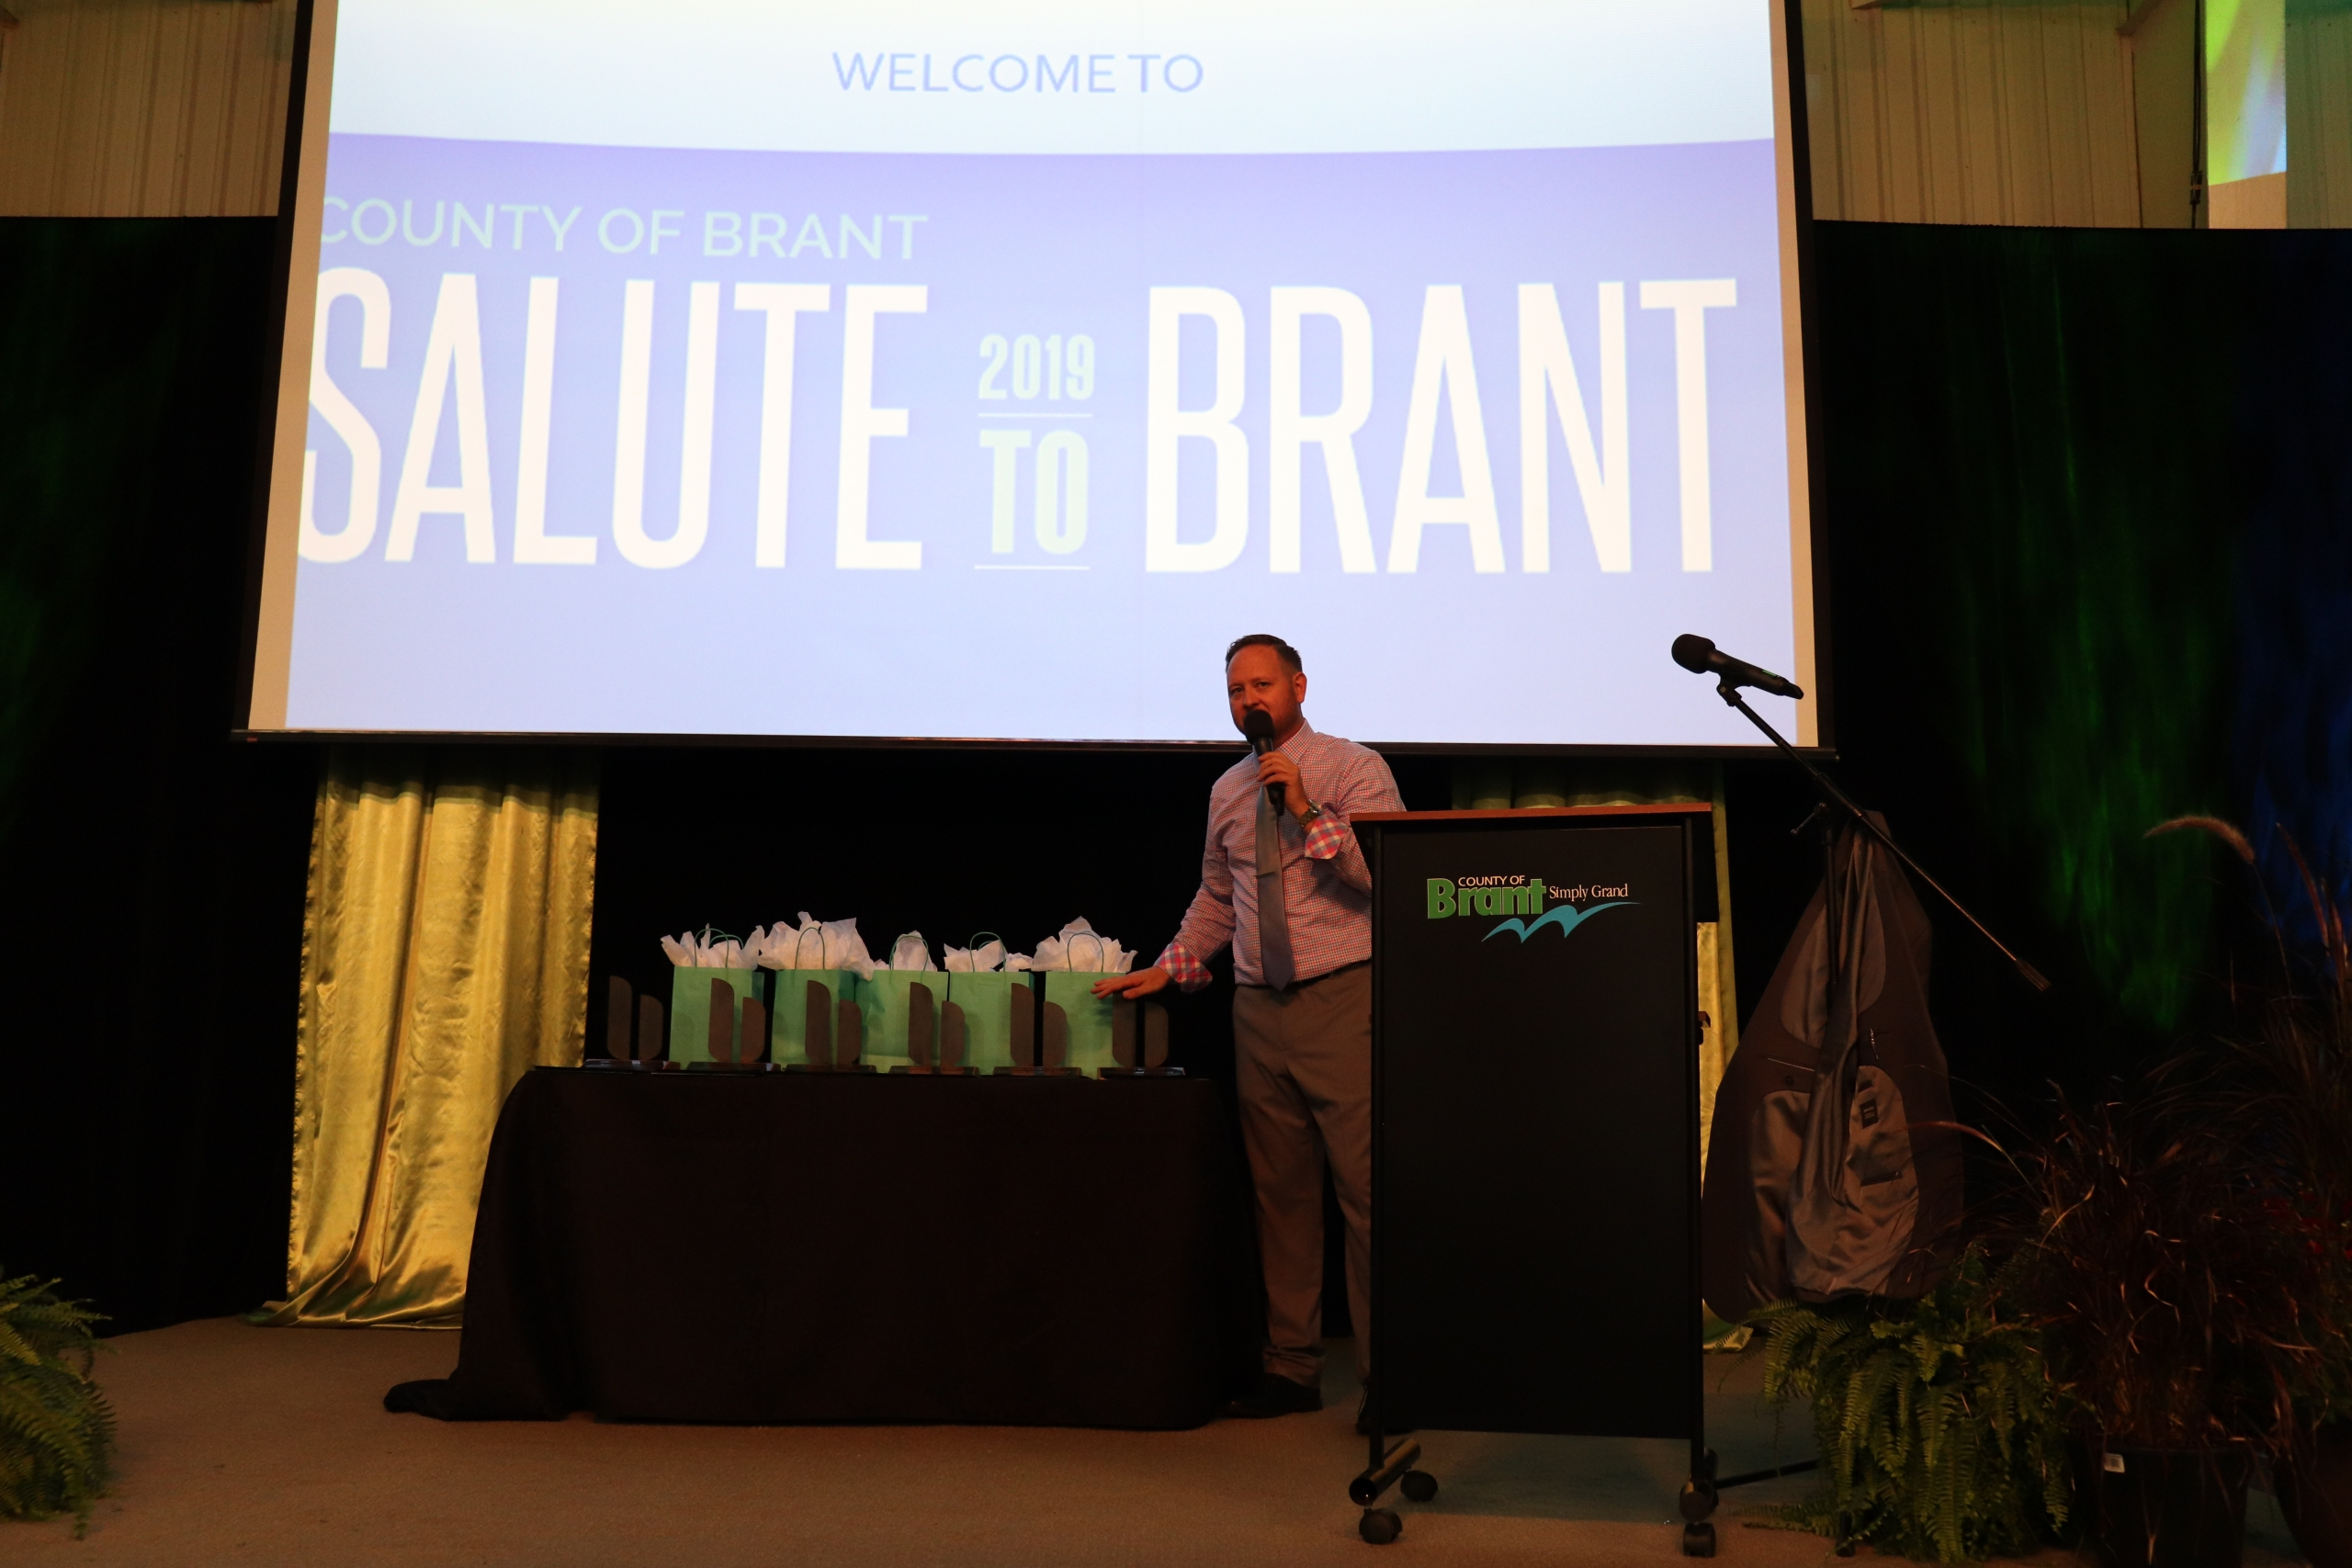 Salute to Brant - Brant Works